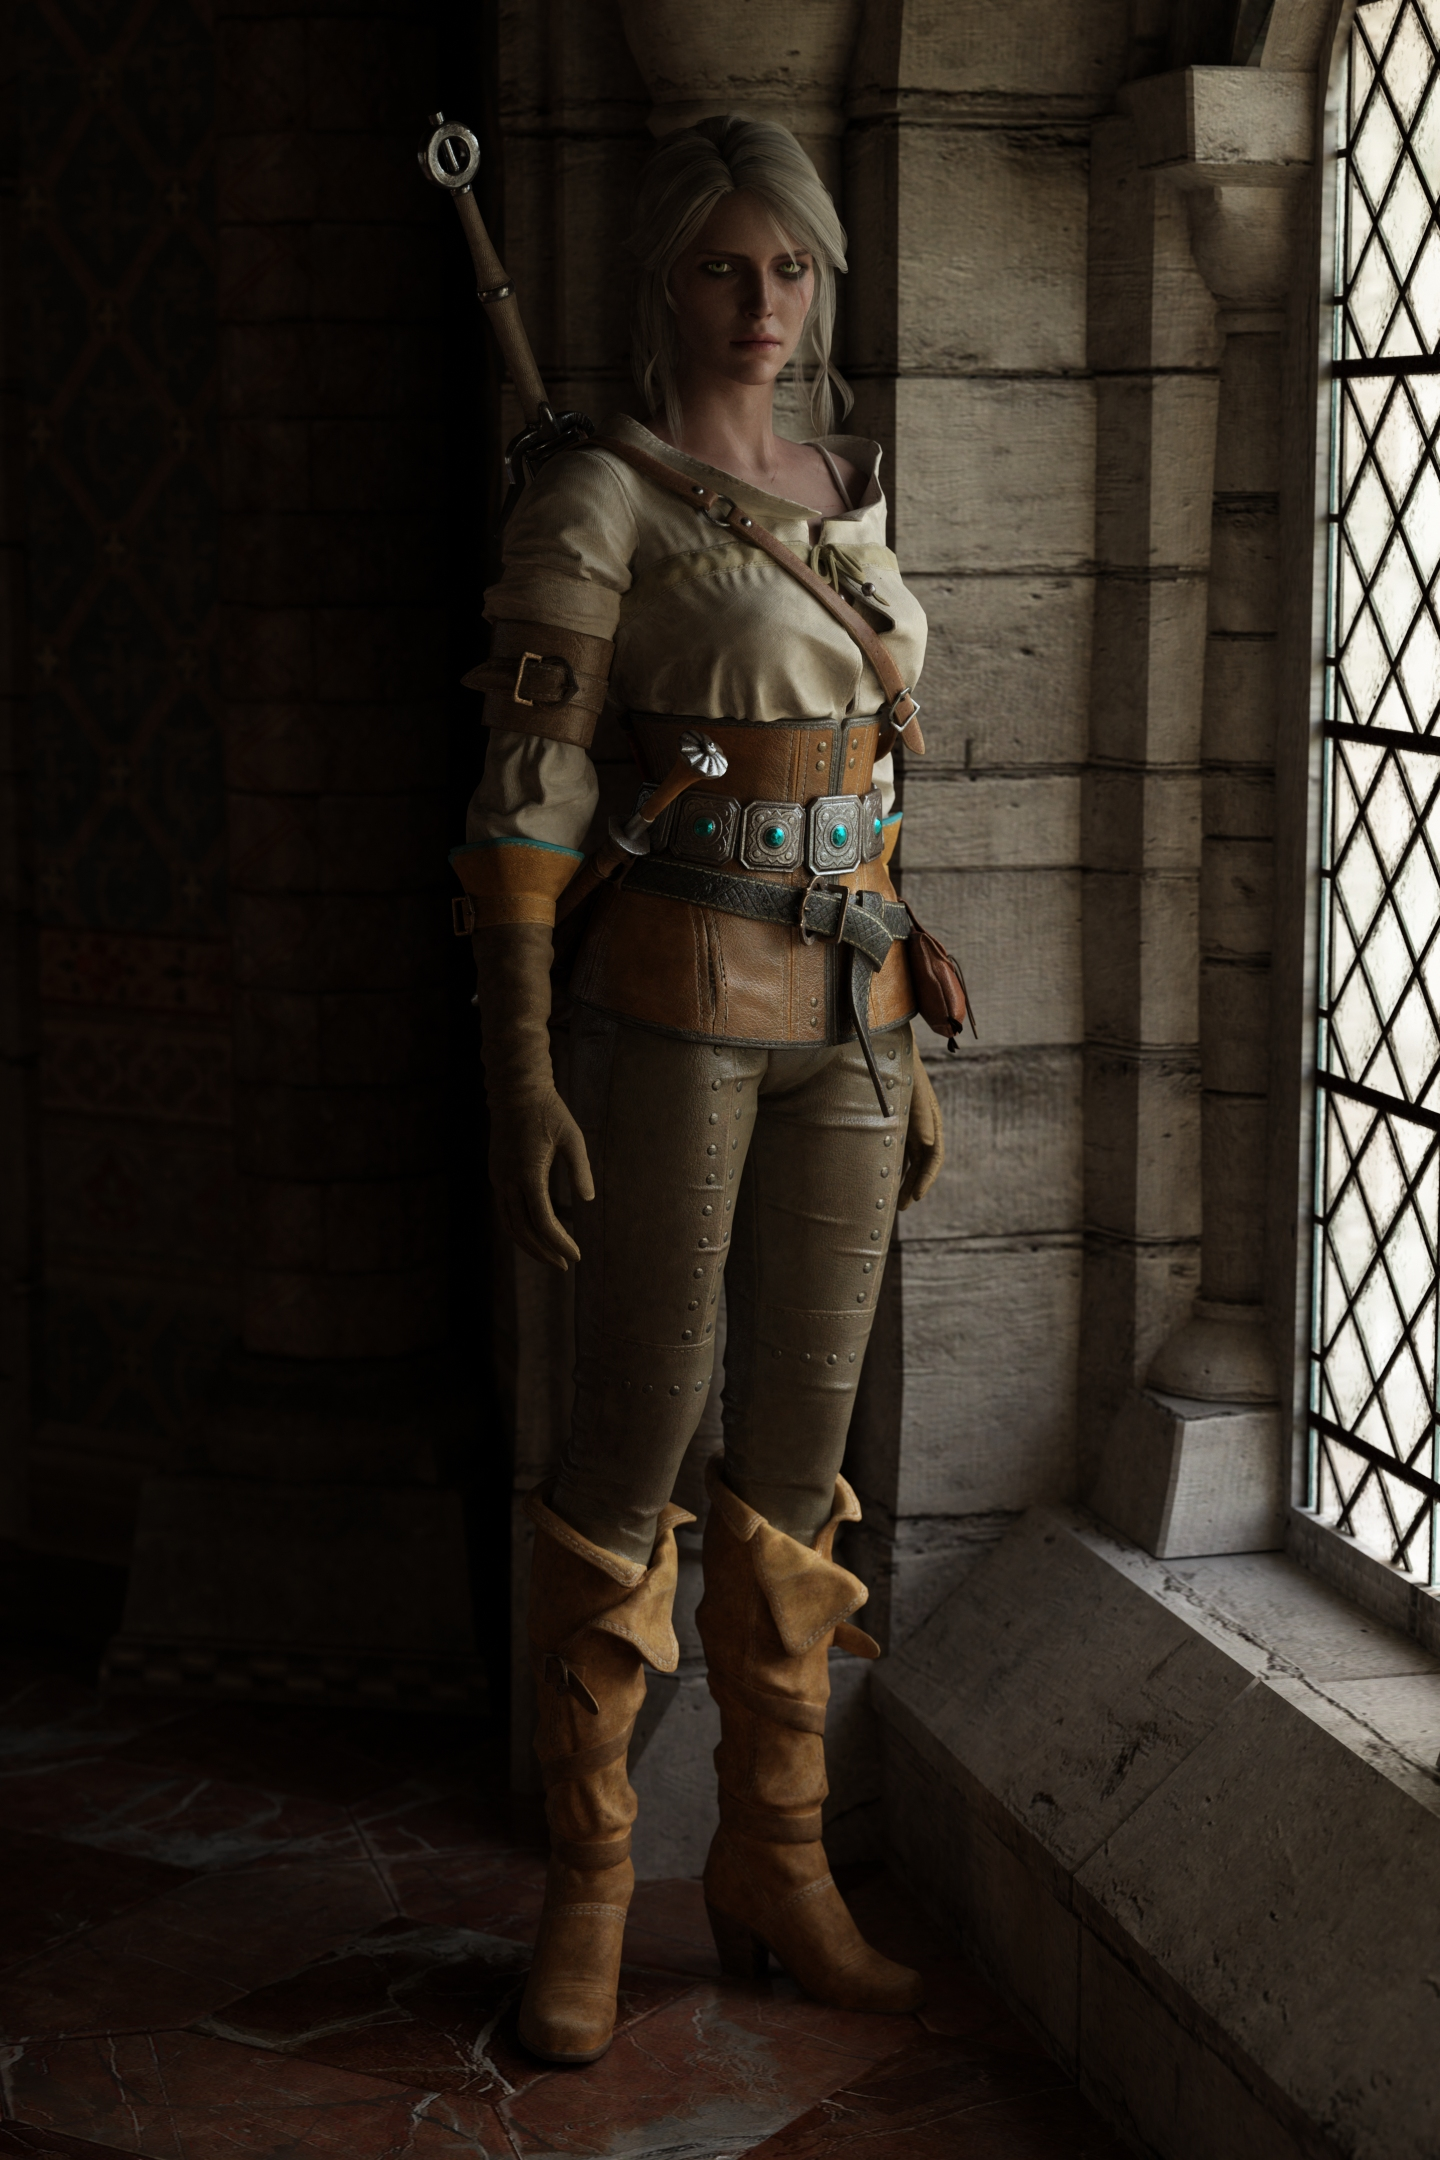 The-Witcher-3-The-Witcher-фэндомы-Ciri-5120267.jpeg - Witcher 3: Wild Hunt, the